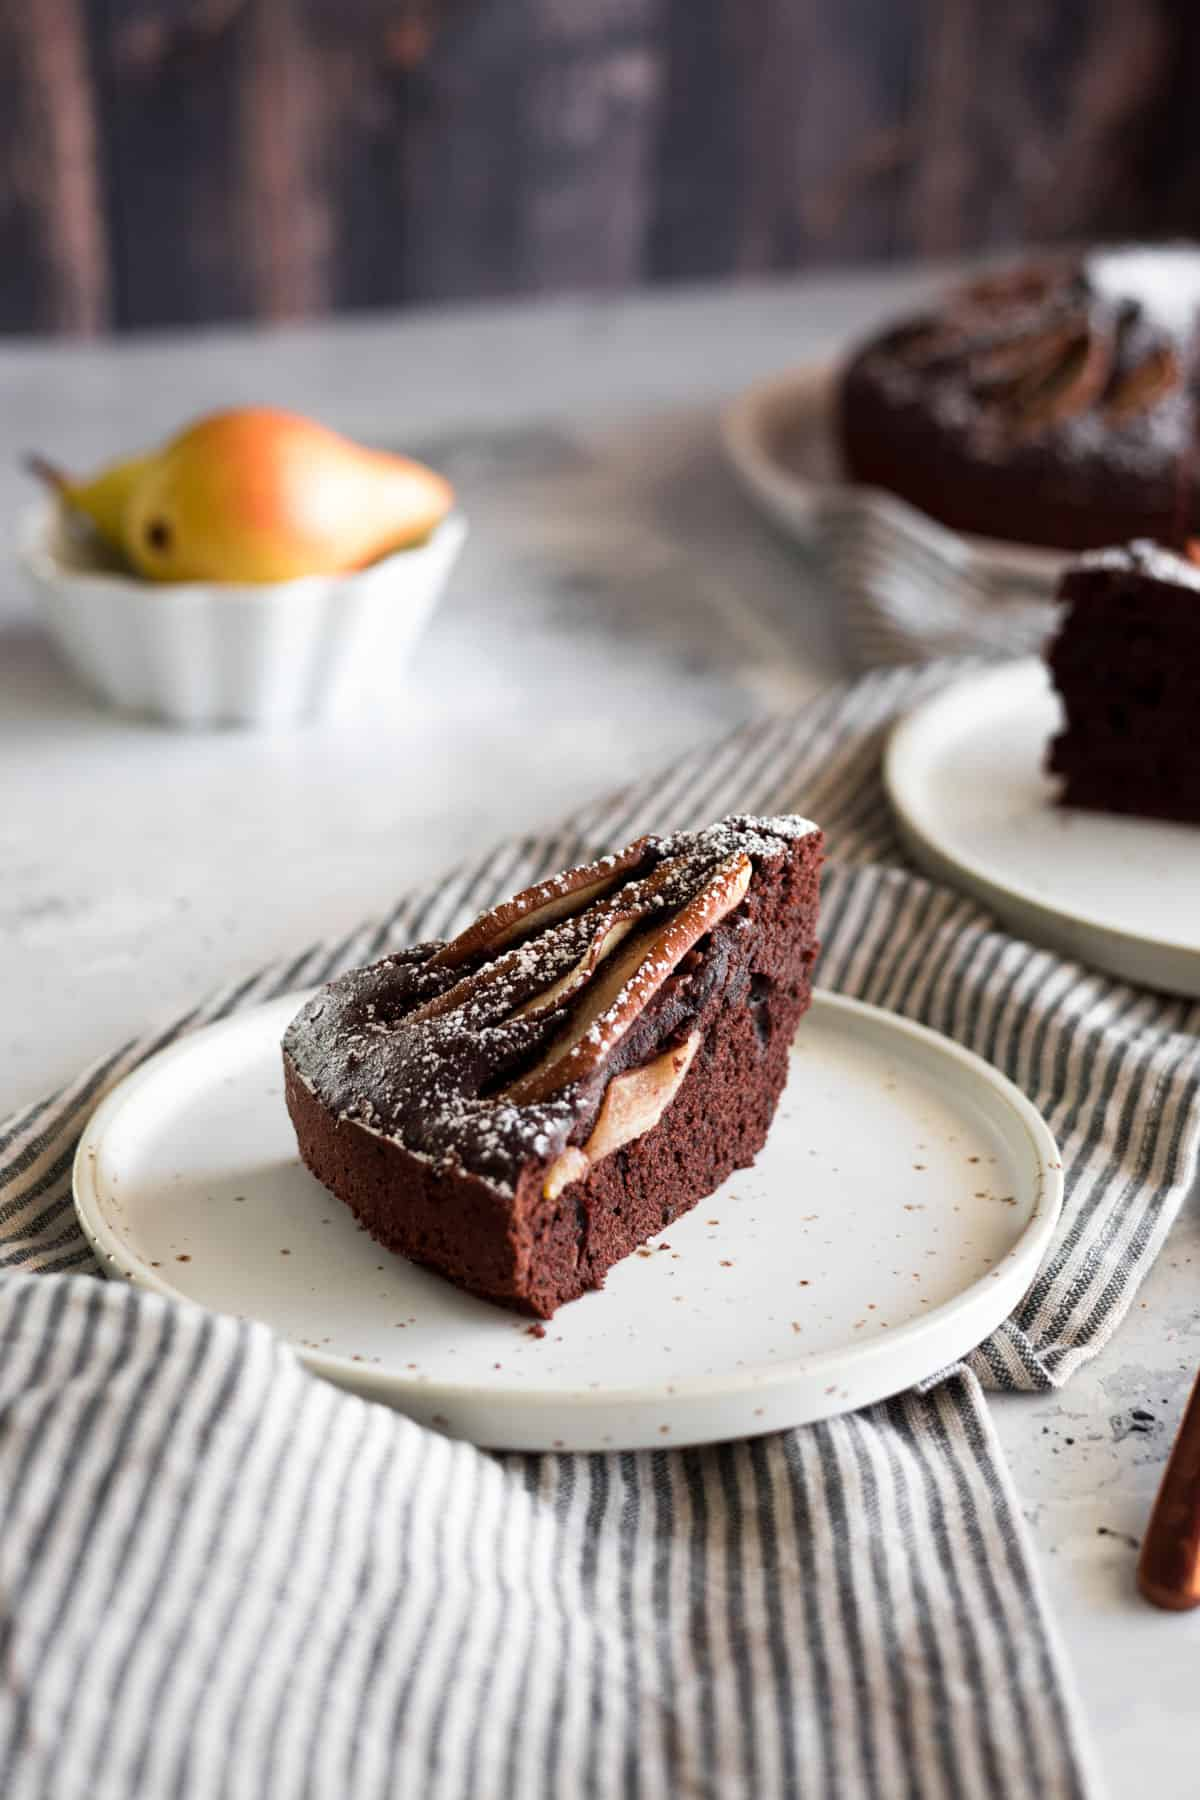 a slice of pear and chocolate cake